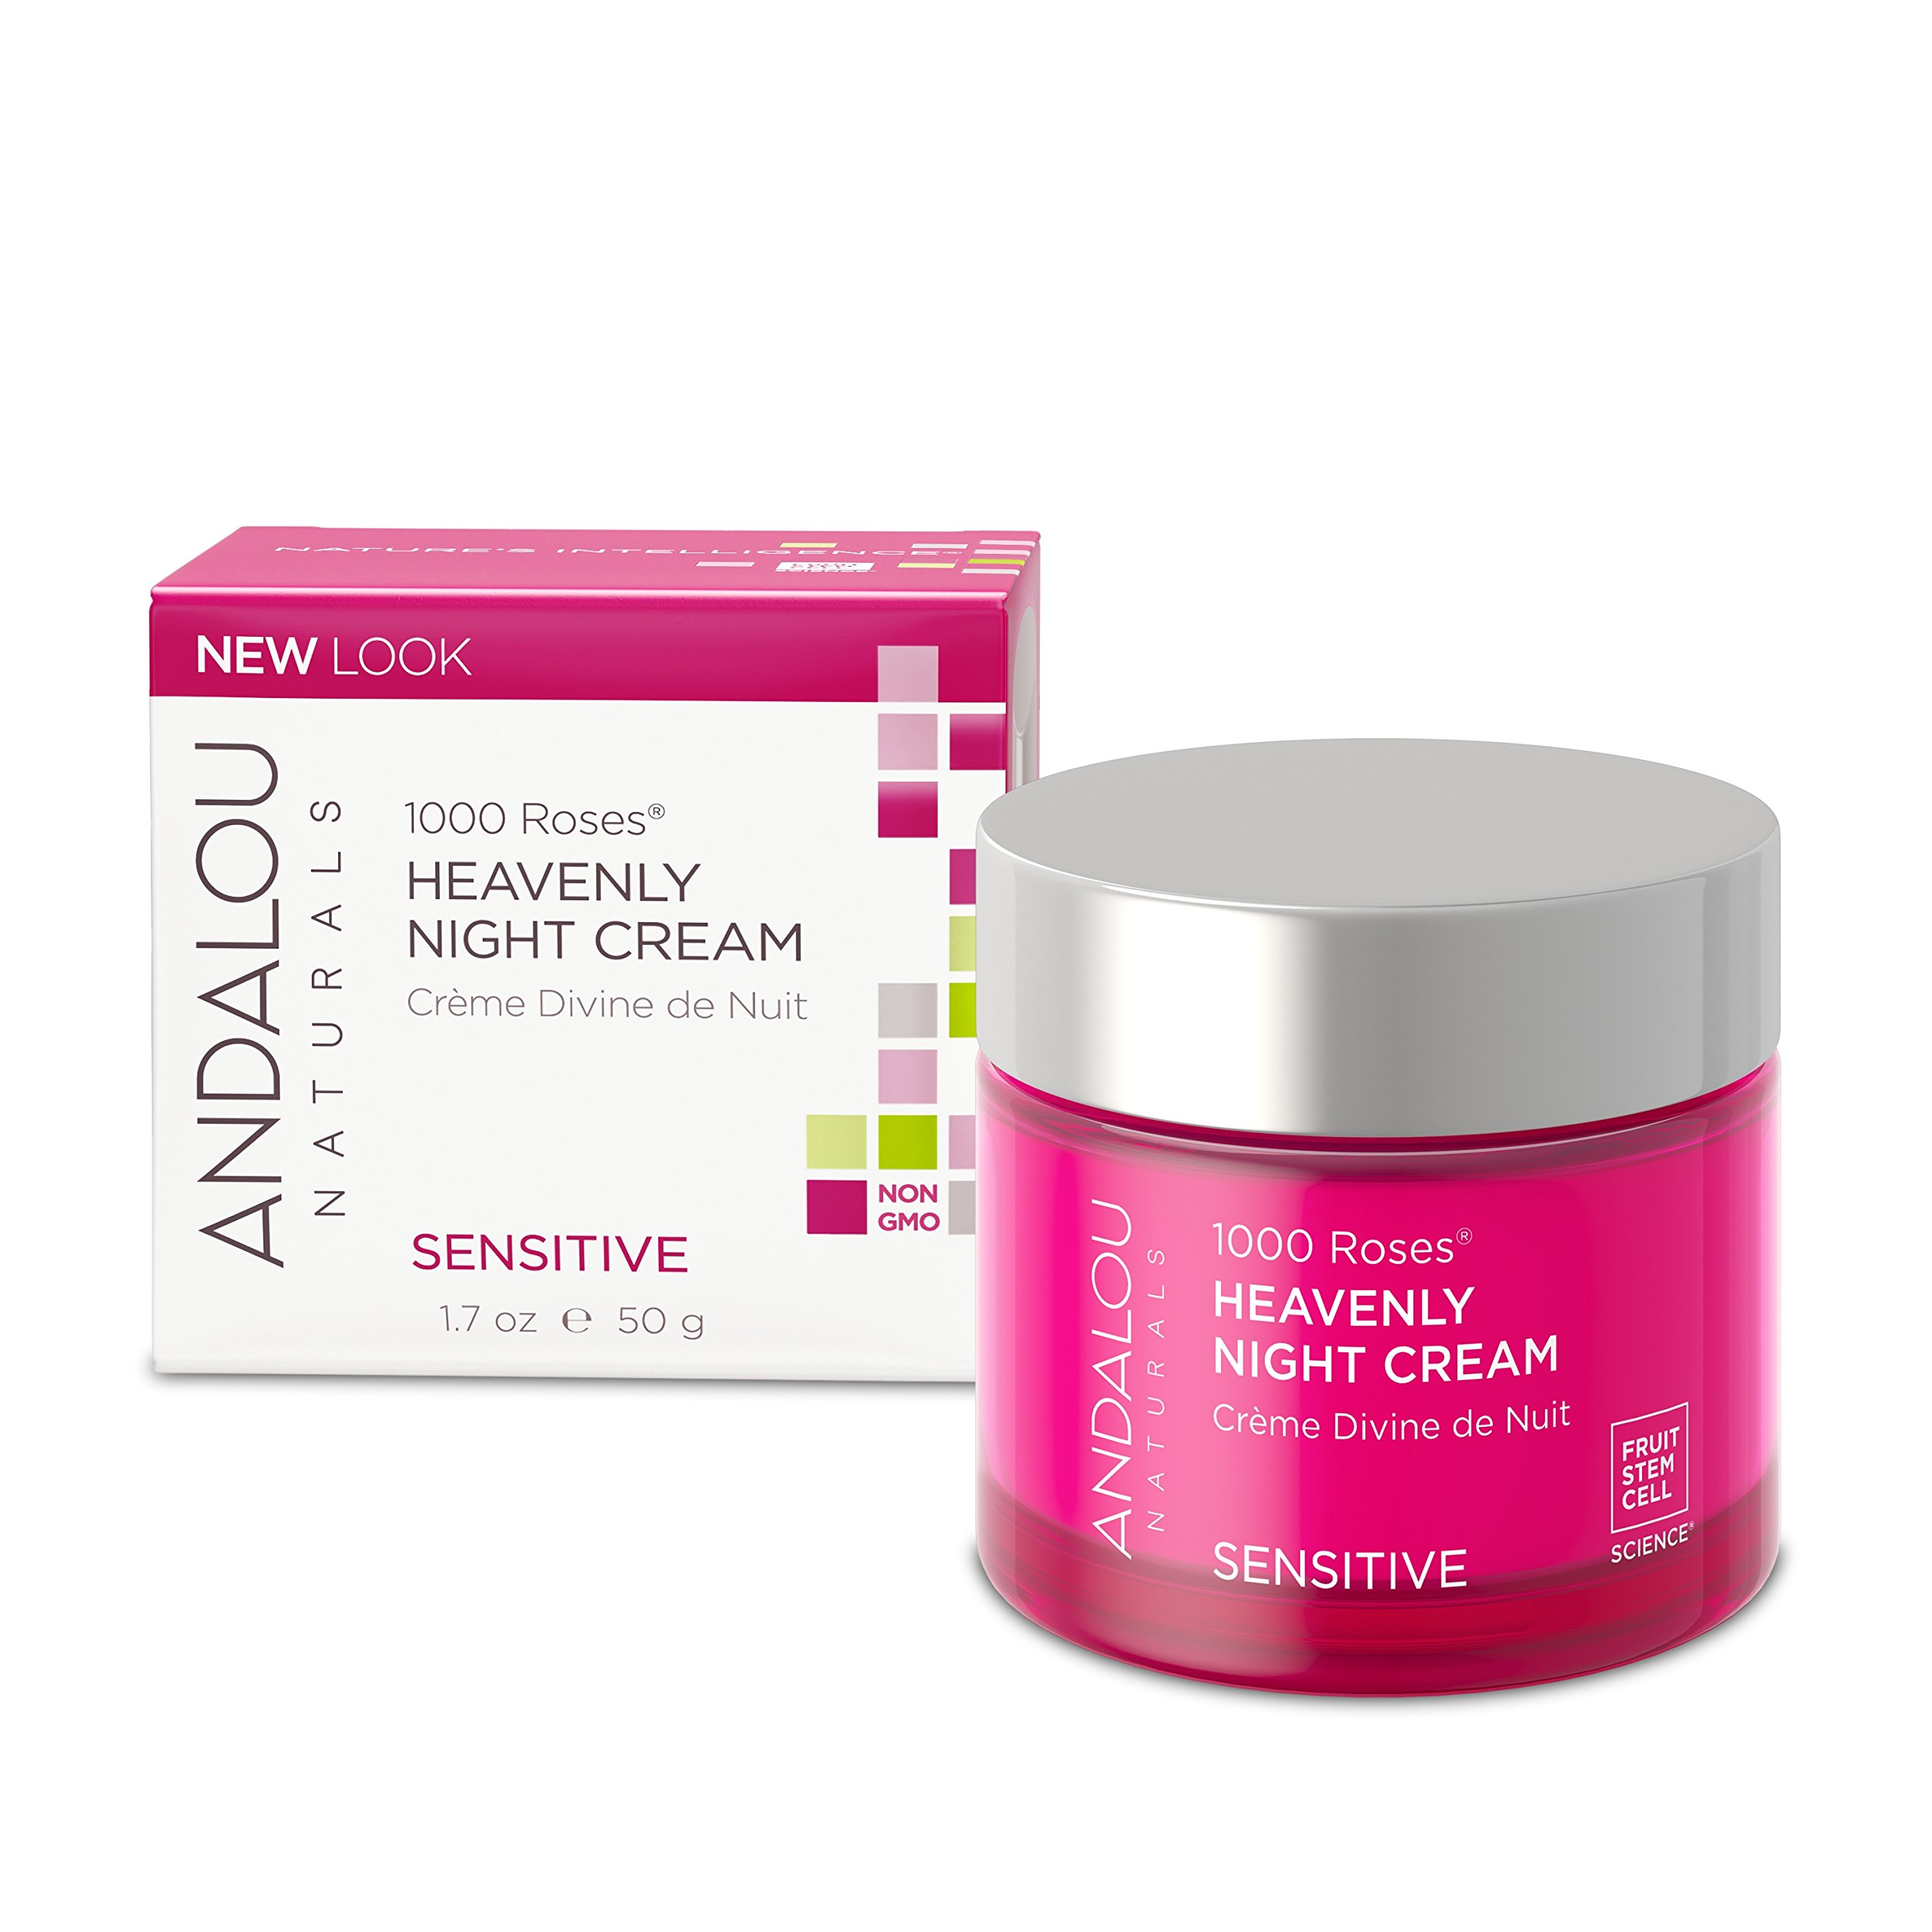 Andalou Naturals 1000 Roses Heavenly Night Cream, 1.7 Ounce